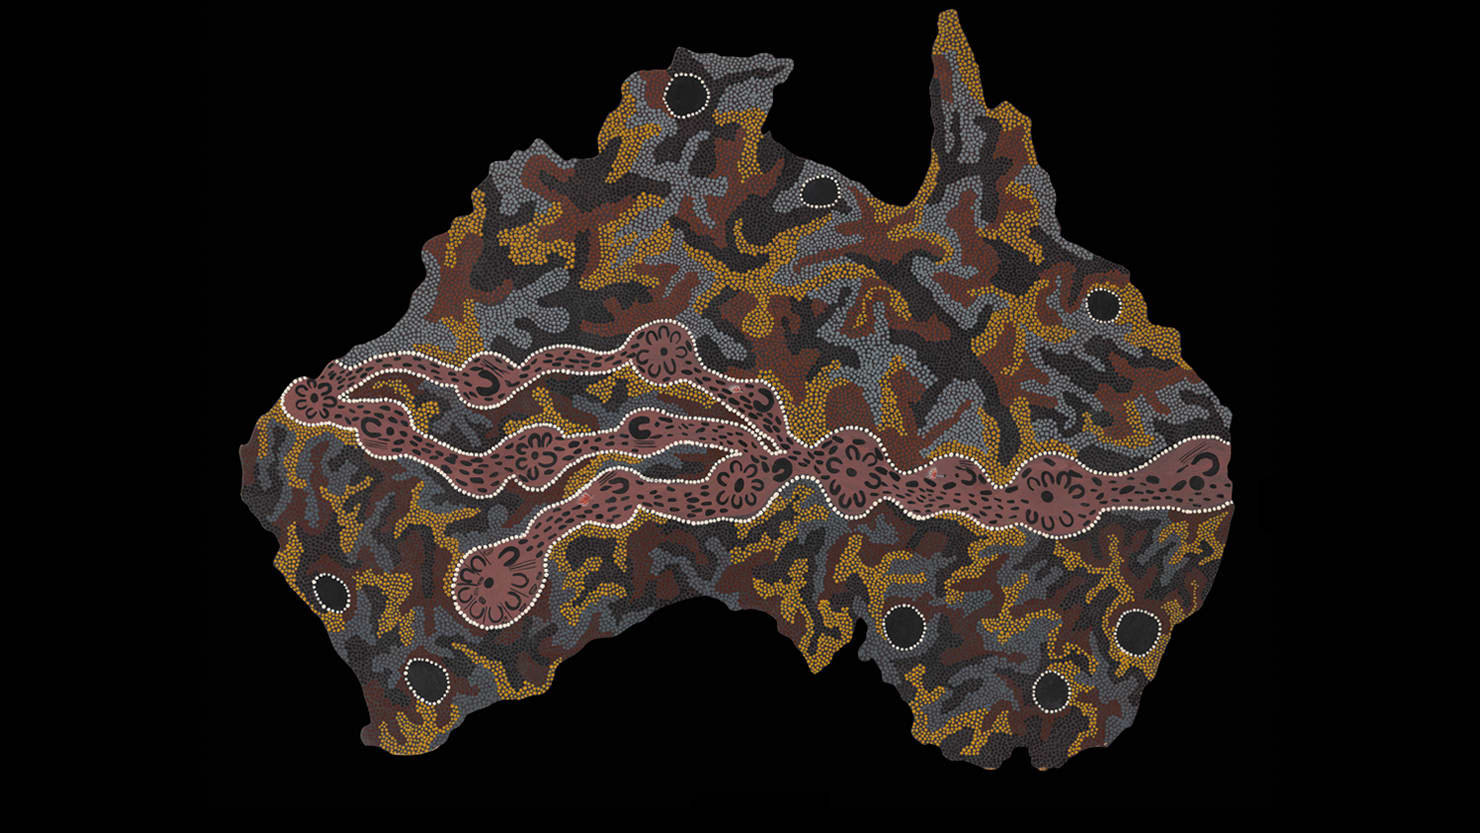 Seven Sisters Songline 1994 by Josephine Mick, Ninuku Arts © the artist/Copyright Agency 2020 Image: National Museum of Australia